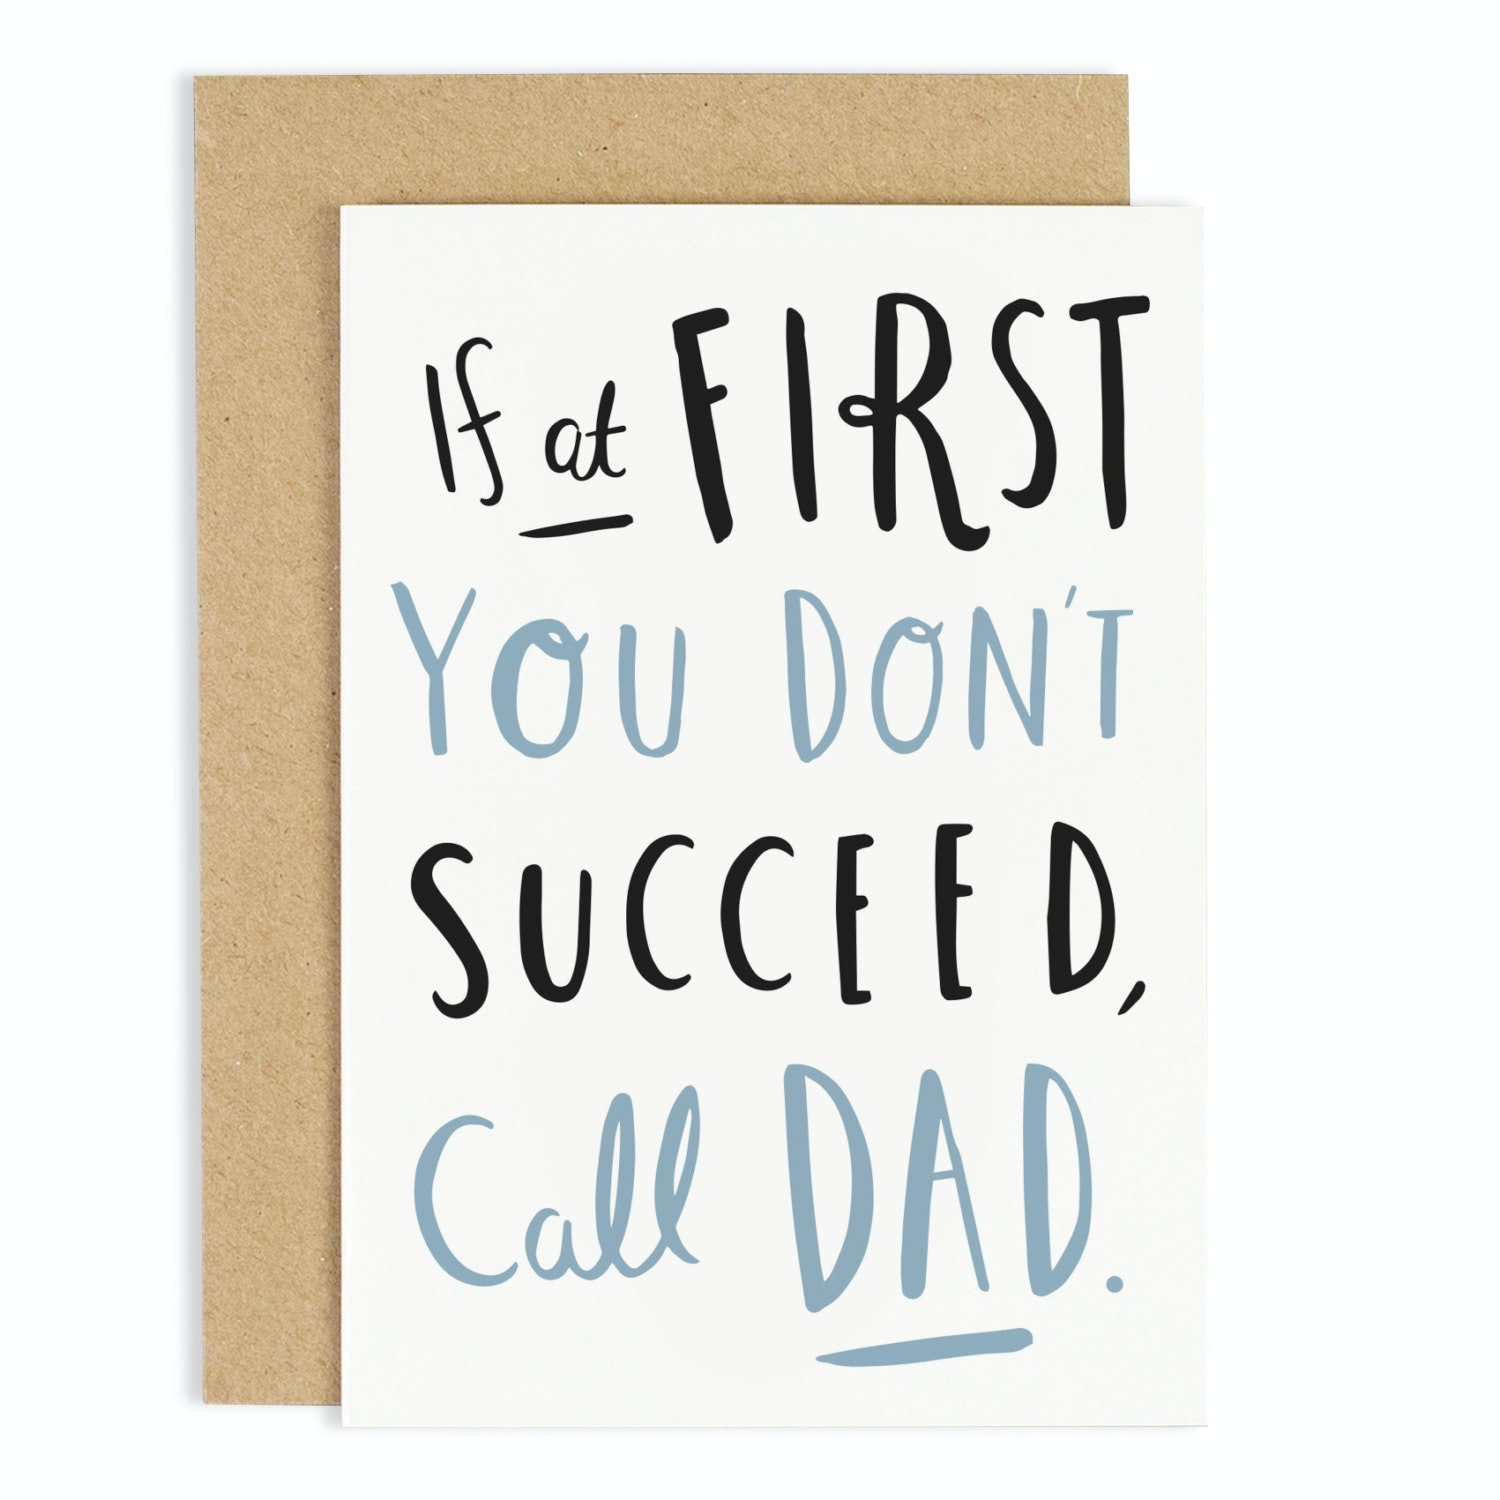 17 Fathers Day Cards For 2016 That Show Your Dad How Much He Means